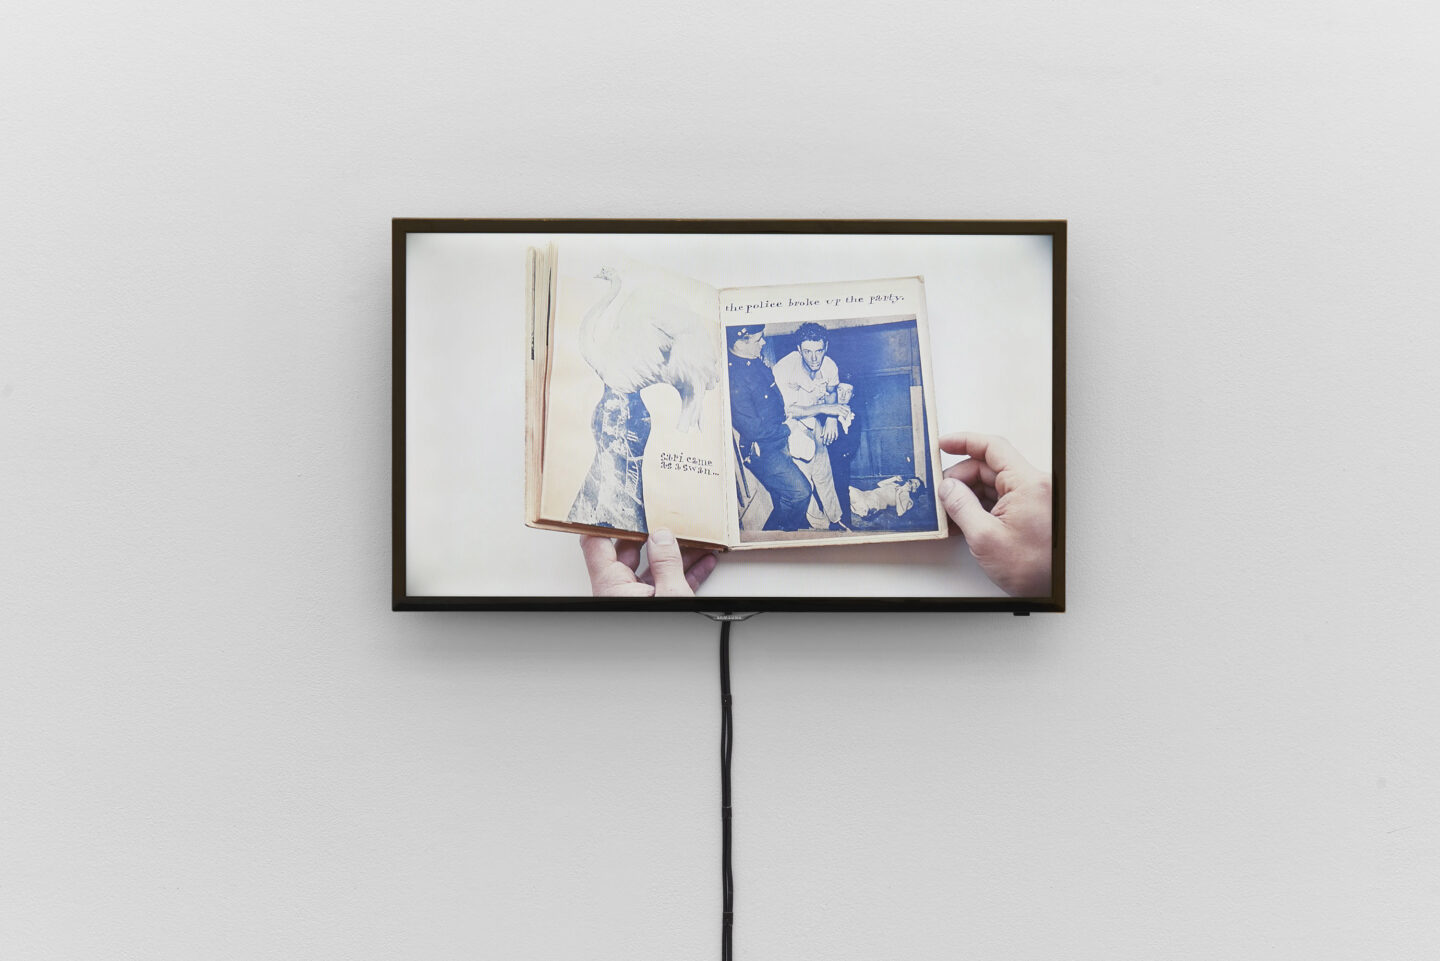 Exhibition View Groupshow «Bizarre Silks, Private Imaginings and Narrative Facts, etc.; view on video documentation Ray Johnson's artist book Ray Gives a Party, ca. 1955» an exhibition by Nick Mauss at Kunsthalle Basel, Basel, 2020 / Photo: Philipp Hänger and Kunsthalle Basel / Courtesy: the artist and Kunsthalle Basel